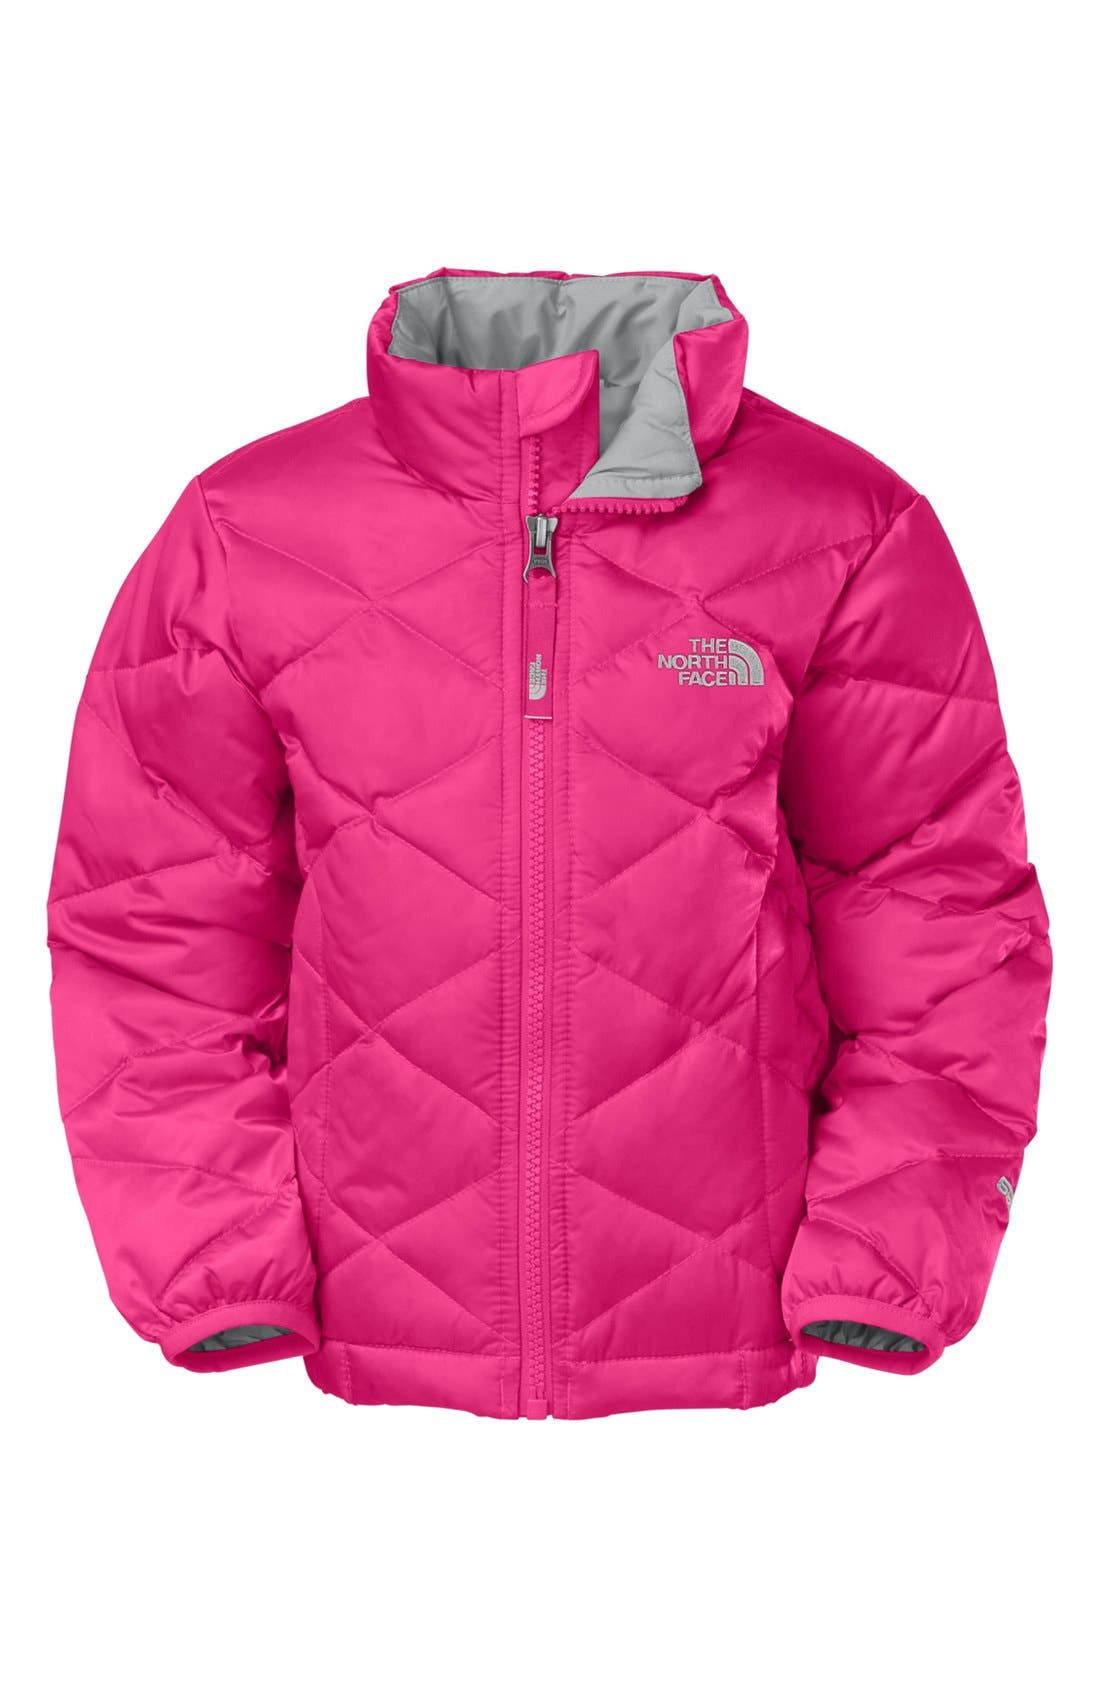 Main Image - The North Face 'Aconcagua' Jacket (Toddler)(Nordstrom Exclusive)